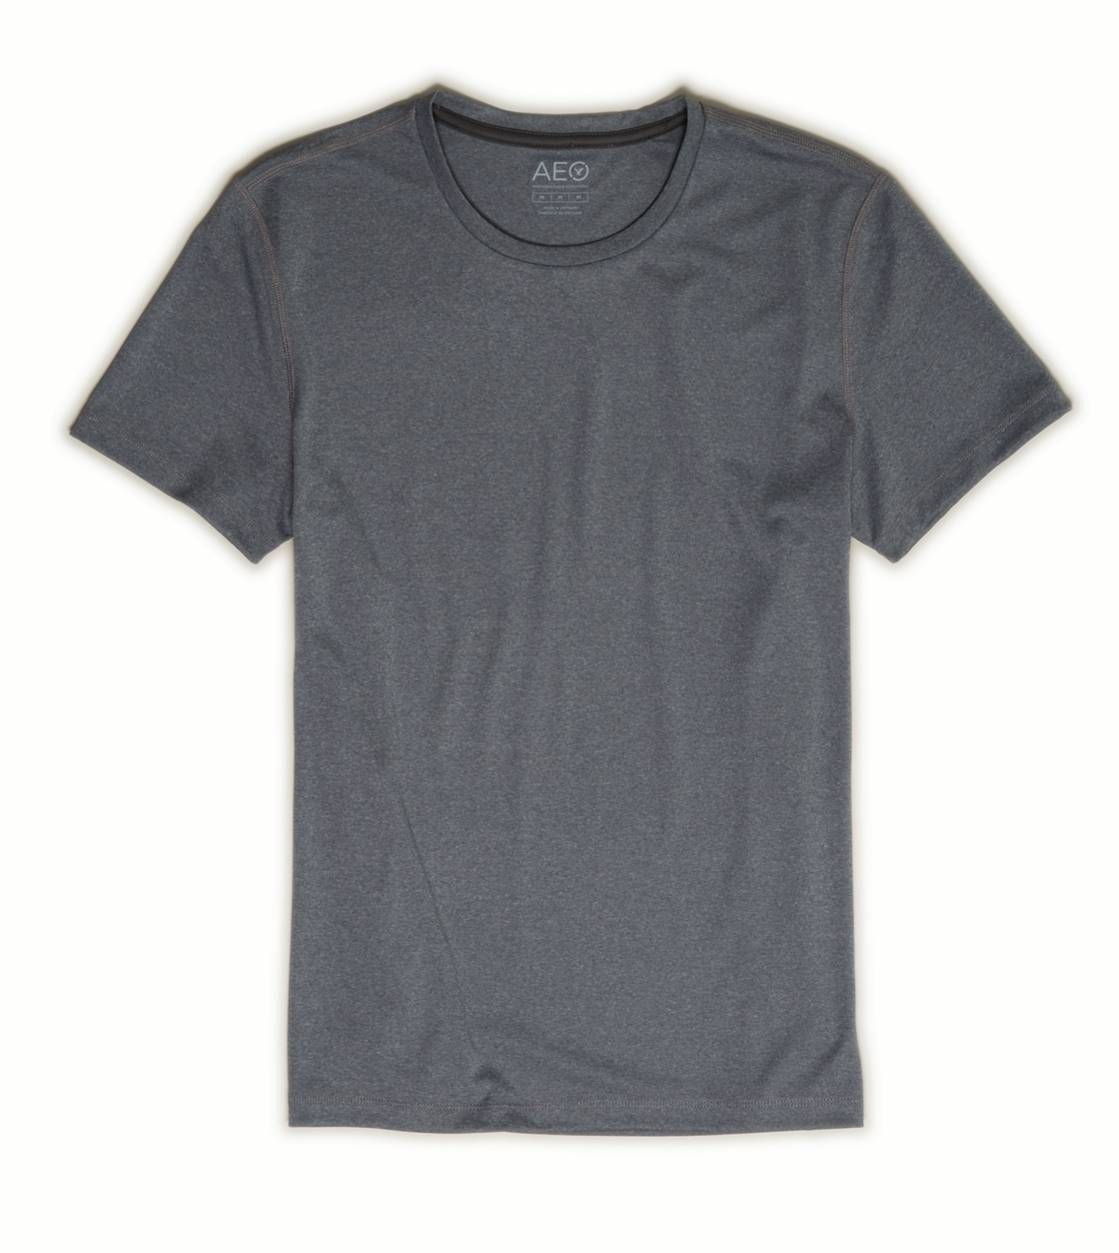 Gravel Heather AEO Performance Crew T-Shirt